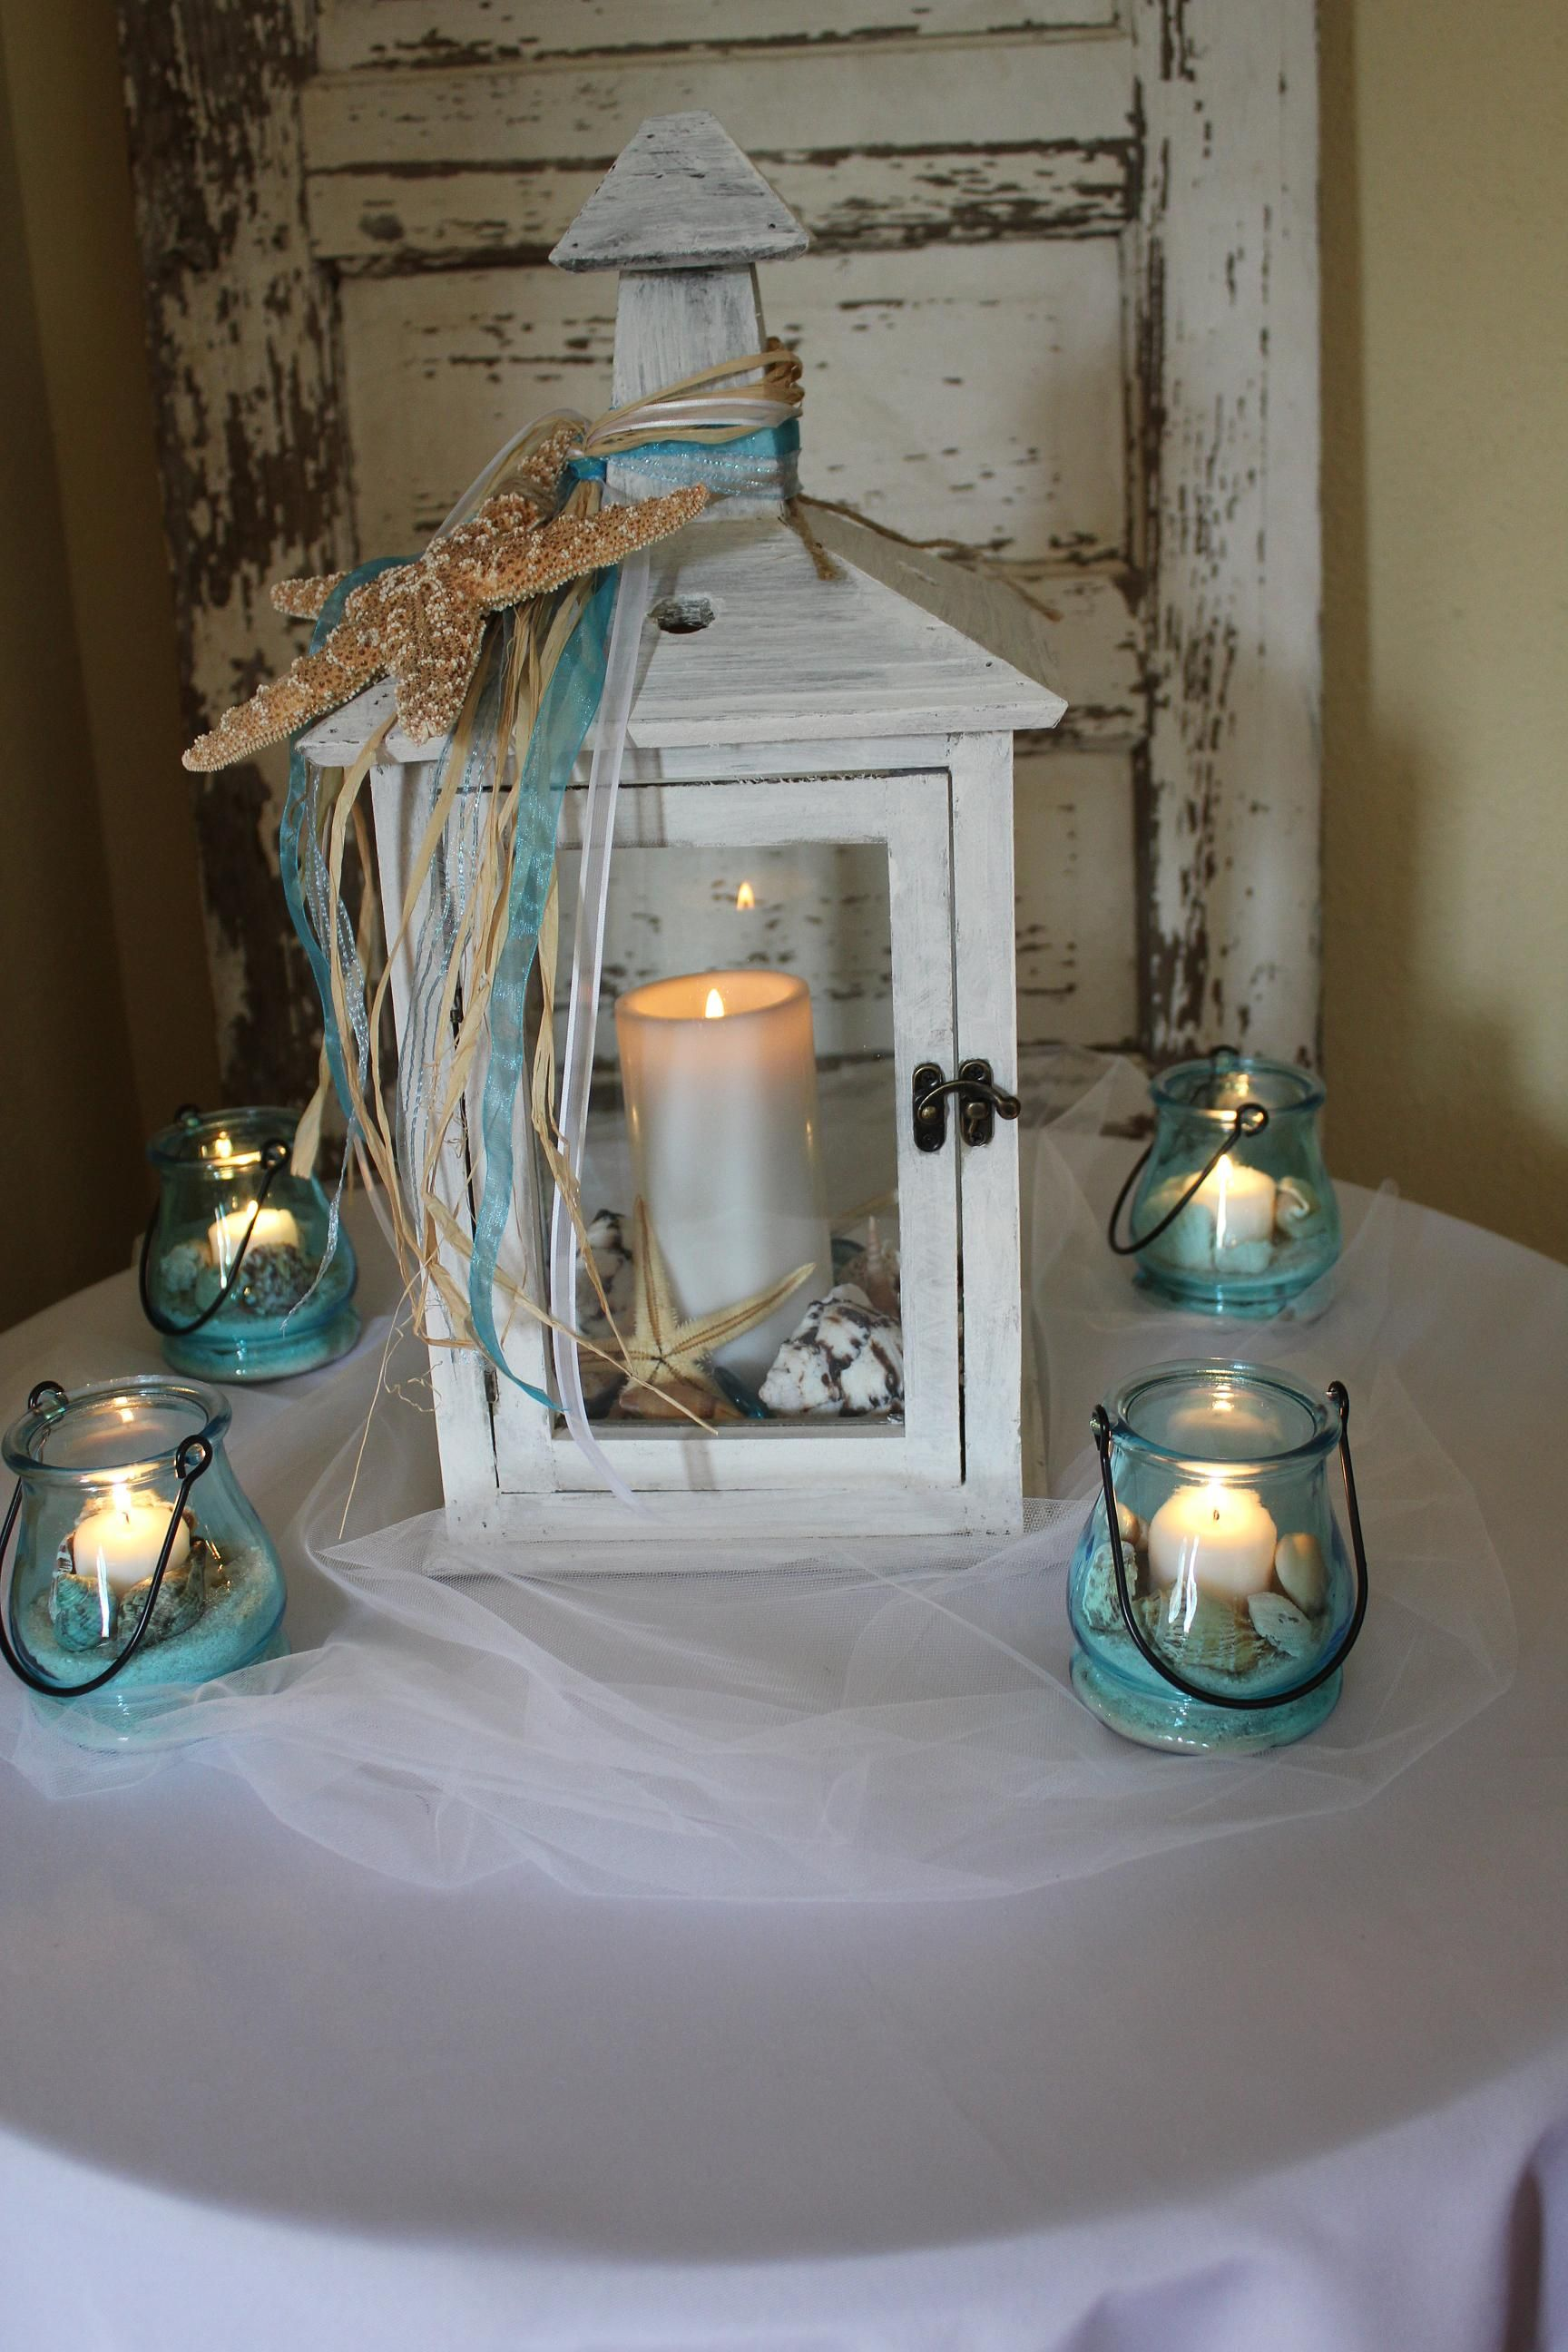 wedding centerpieces for sale beach wedding centerpieces reception decorations wedding ideas without the starfish